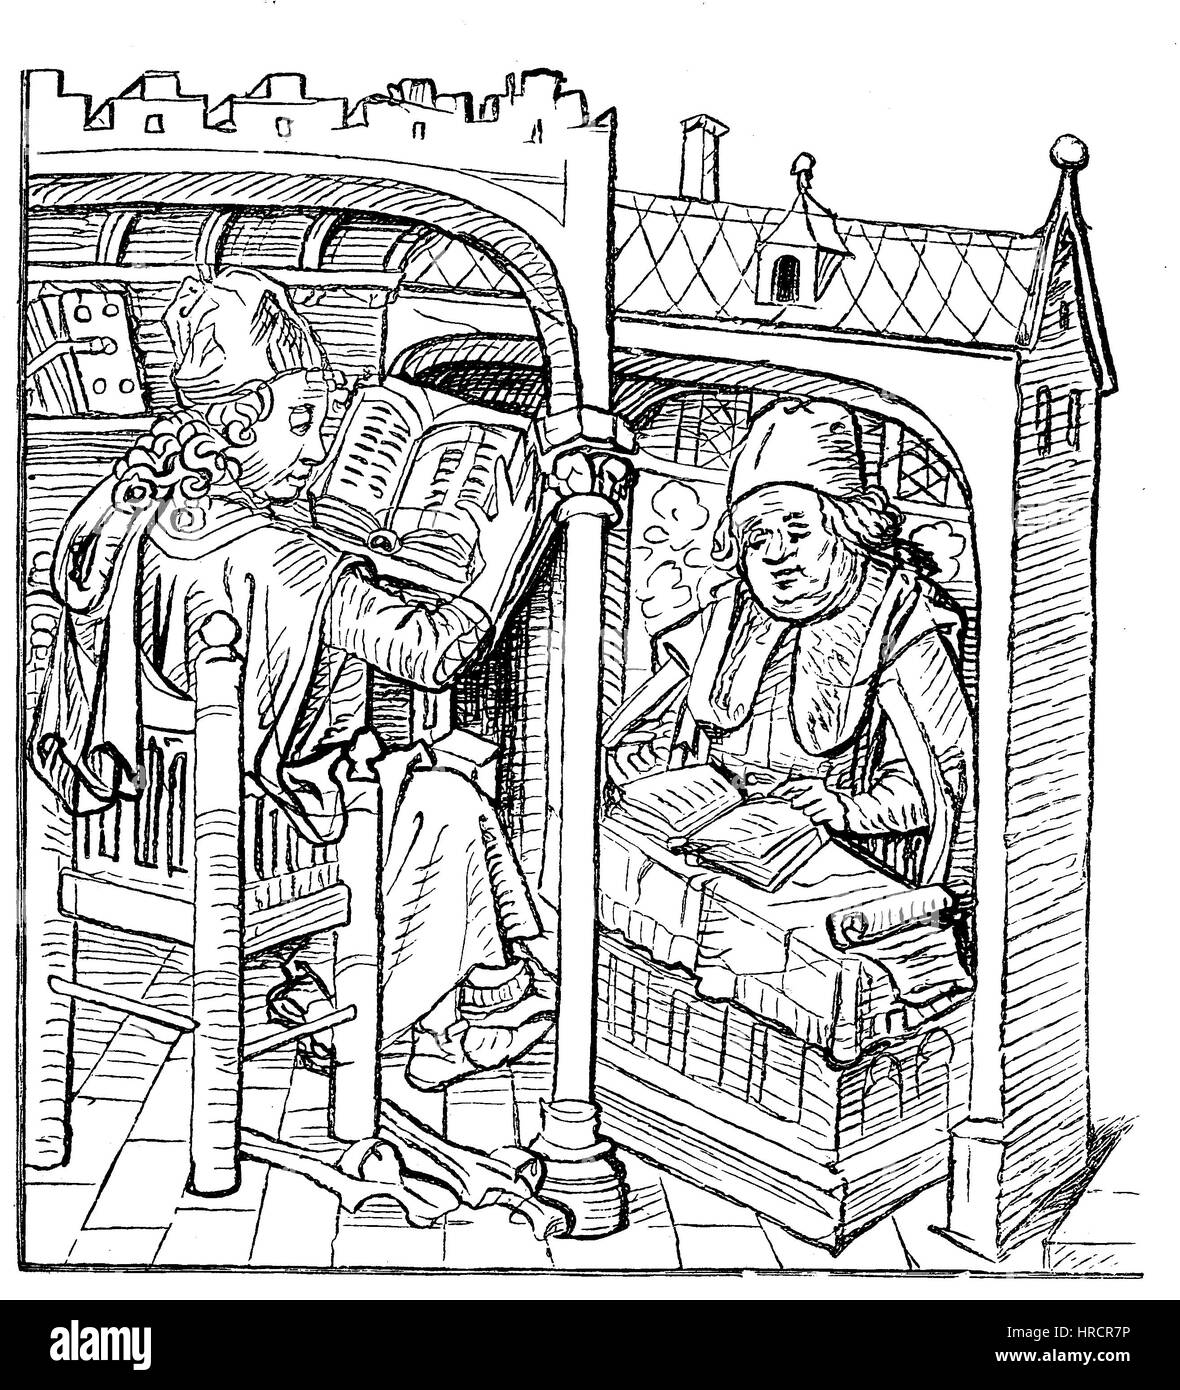 Scholars study at reading desks, from the medieval Hausbuch from the 15th century, Germany. The medieval Hausbuch - Stock Image